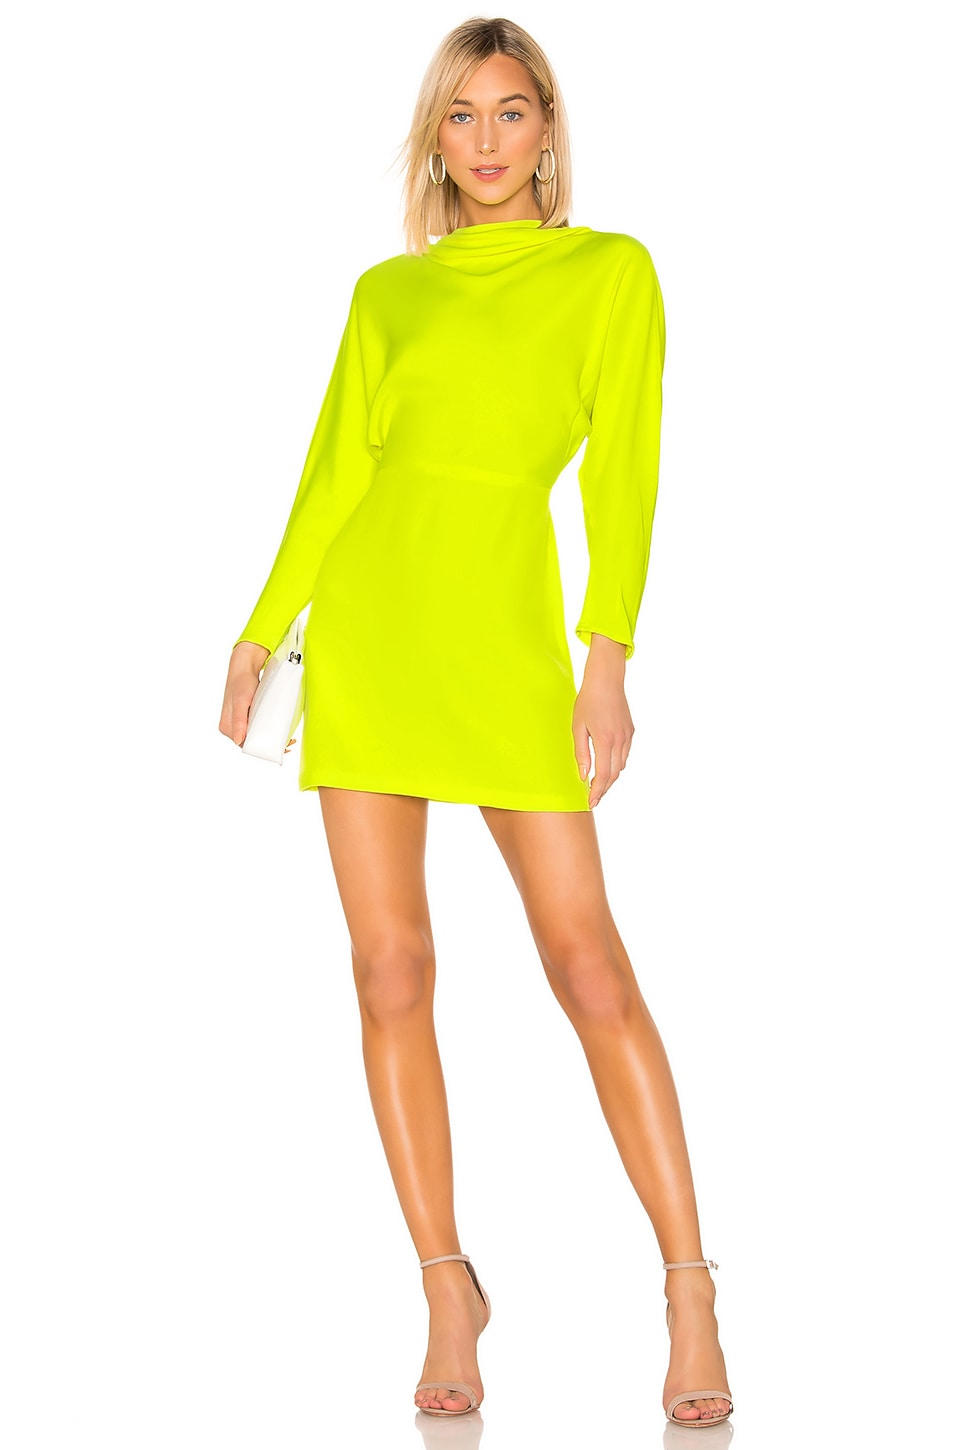 A.L.C. Marin Dress in Neon Yellow